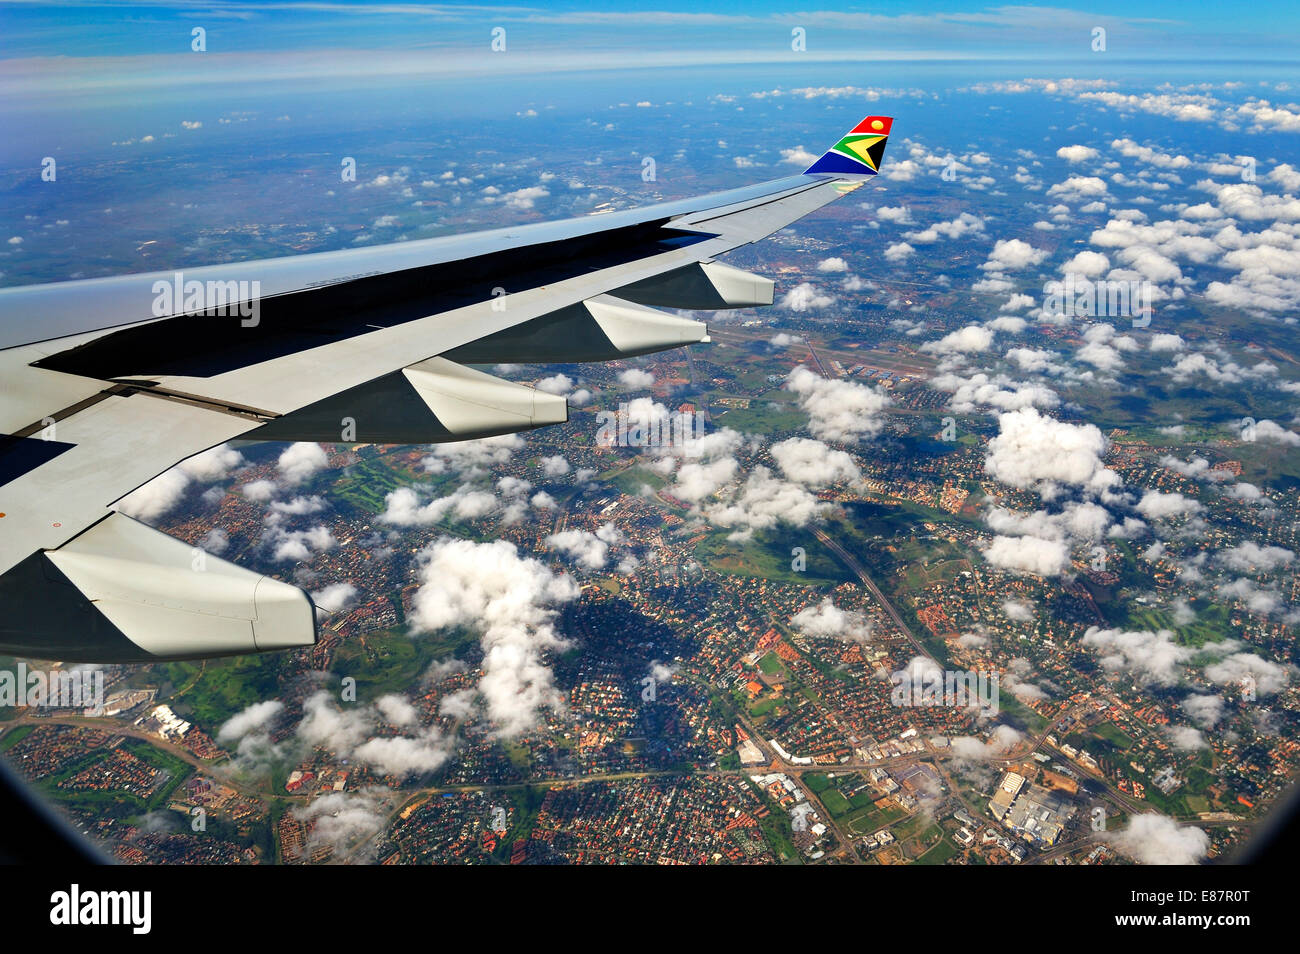 Wing of an Airbus in flight, with winglet and the logo of SAA, South African Airways, suburbs of Johannesburg at - Stock Image